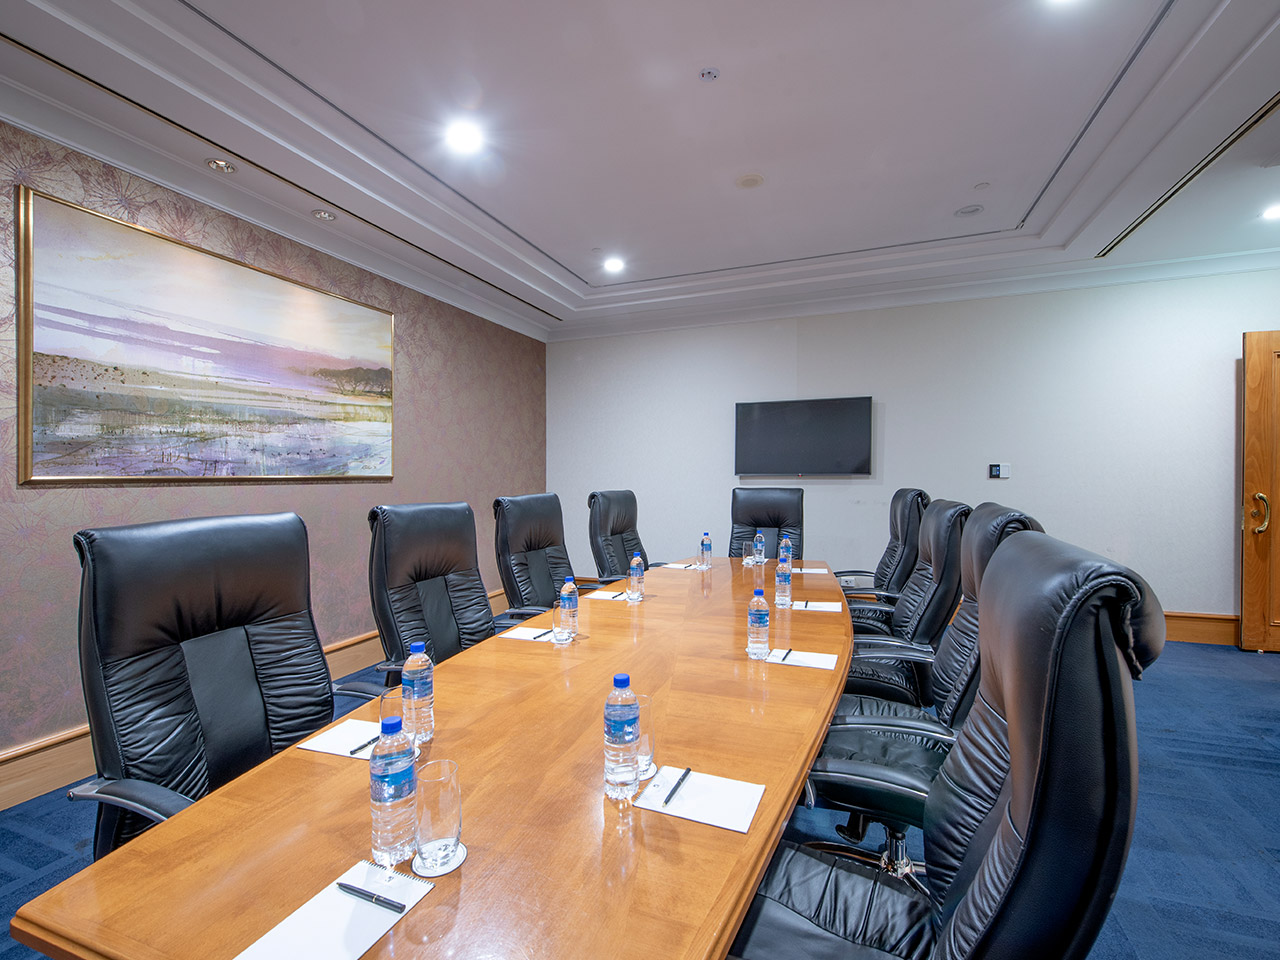 Chairs And A Table With Wall Painting, TV Screen, Papers And Bottled Waters Inside The Boardroom